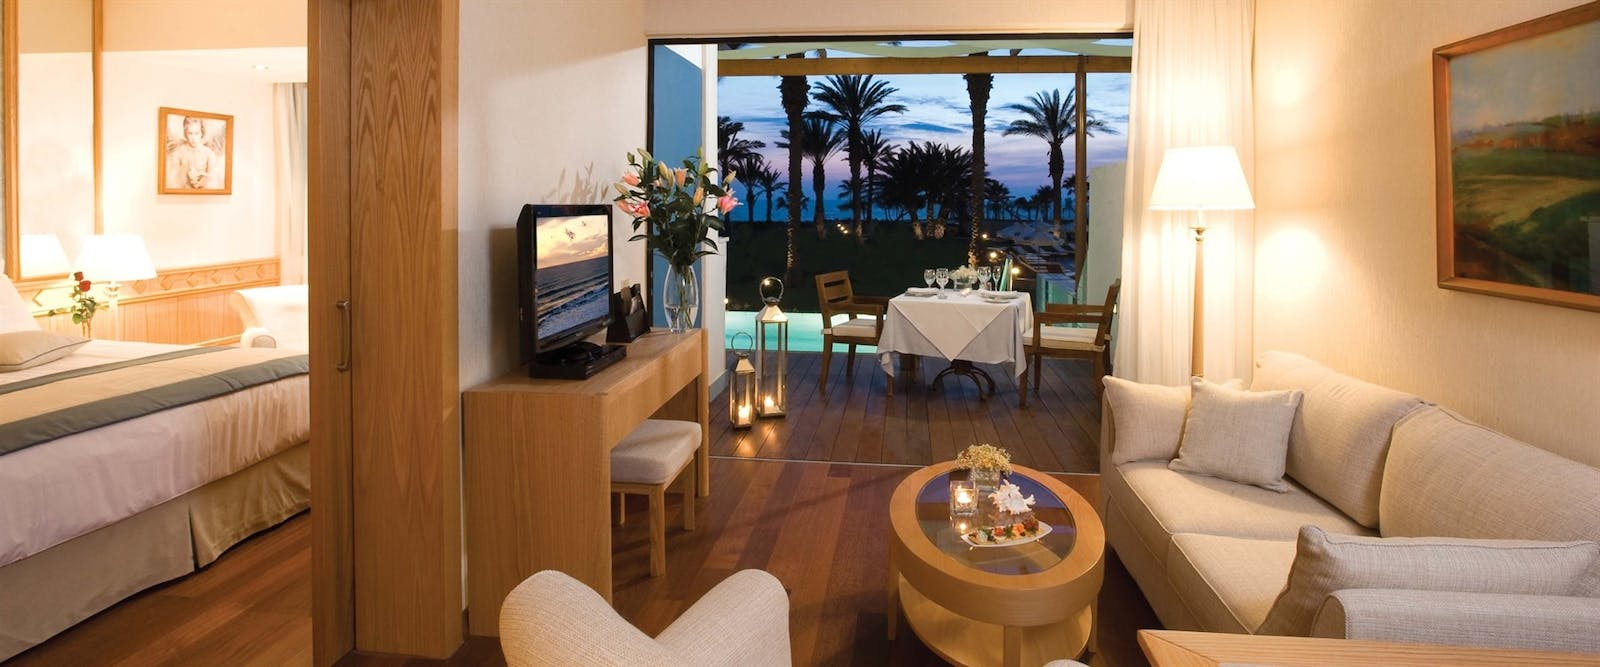 Executive Suite with Private Pool at Constantinou Bros Asimina Suites Hotel, Paphos, Cyprus